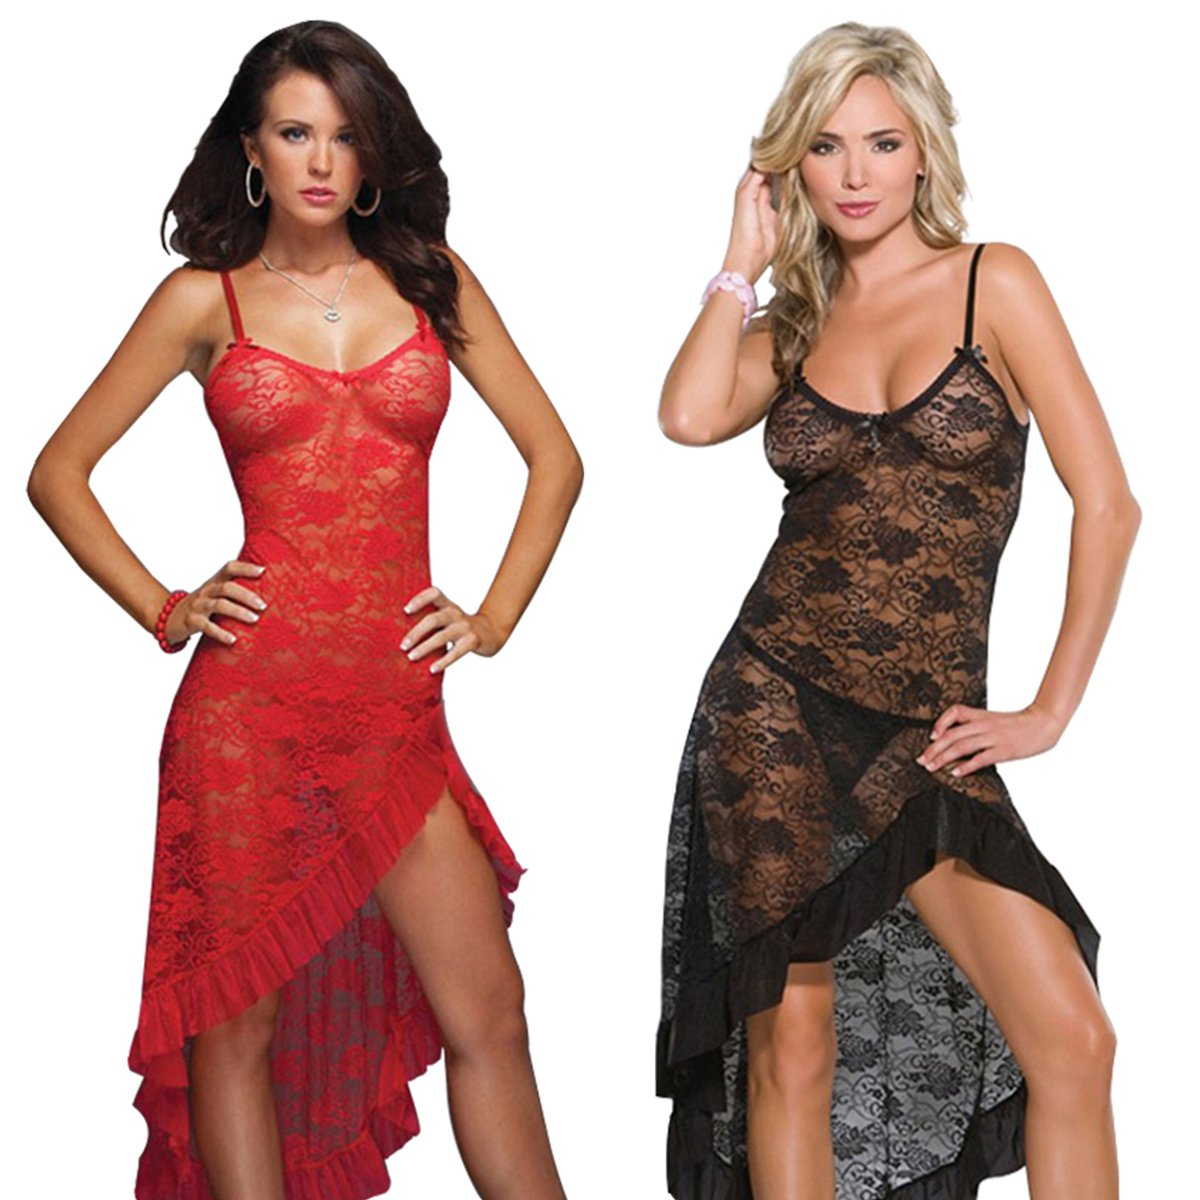 LOVELYBOBO 2 Pack Women Lace Nightwear Lingerie Plus Size Lace High Split Long Gown Dress Sexy Babydoll Chemise (Black+Red) by LOVELYBOBO (Image #1)